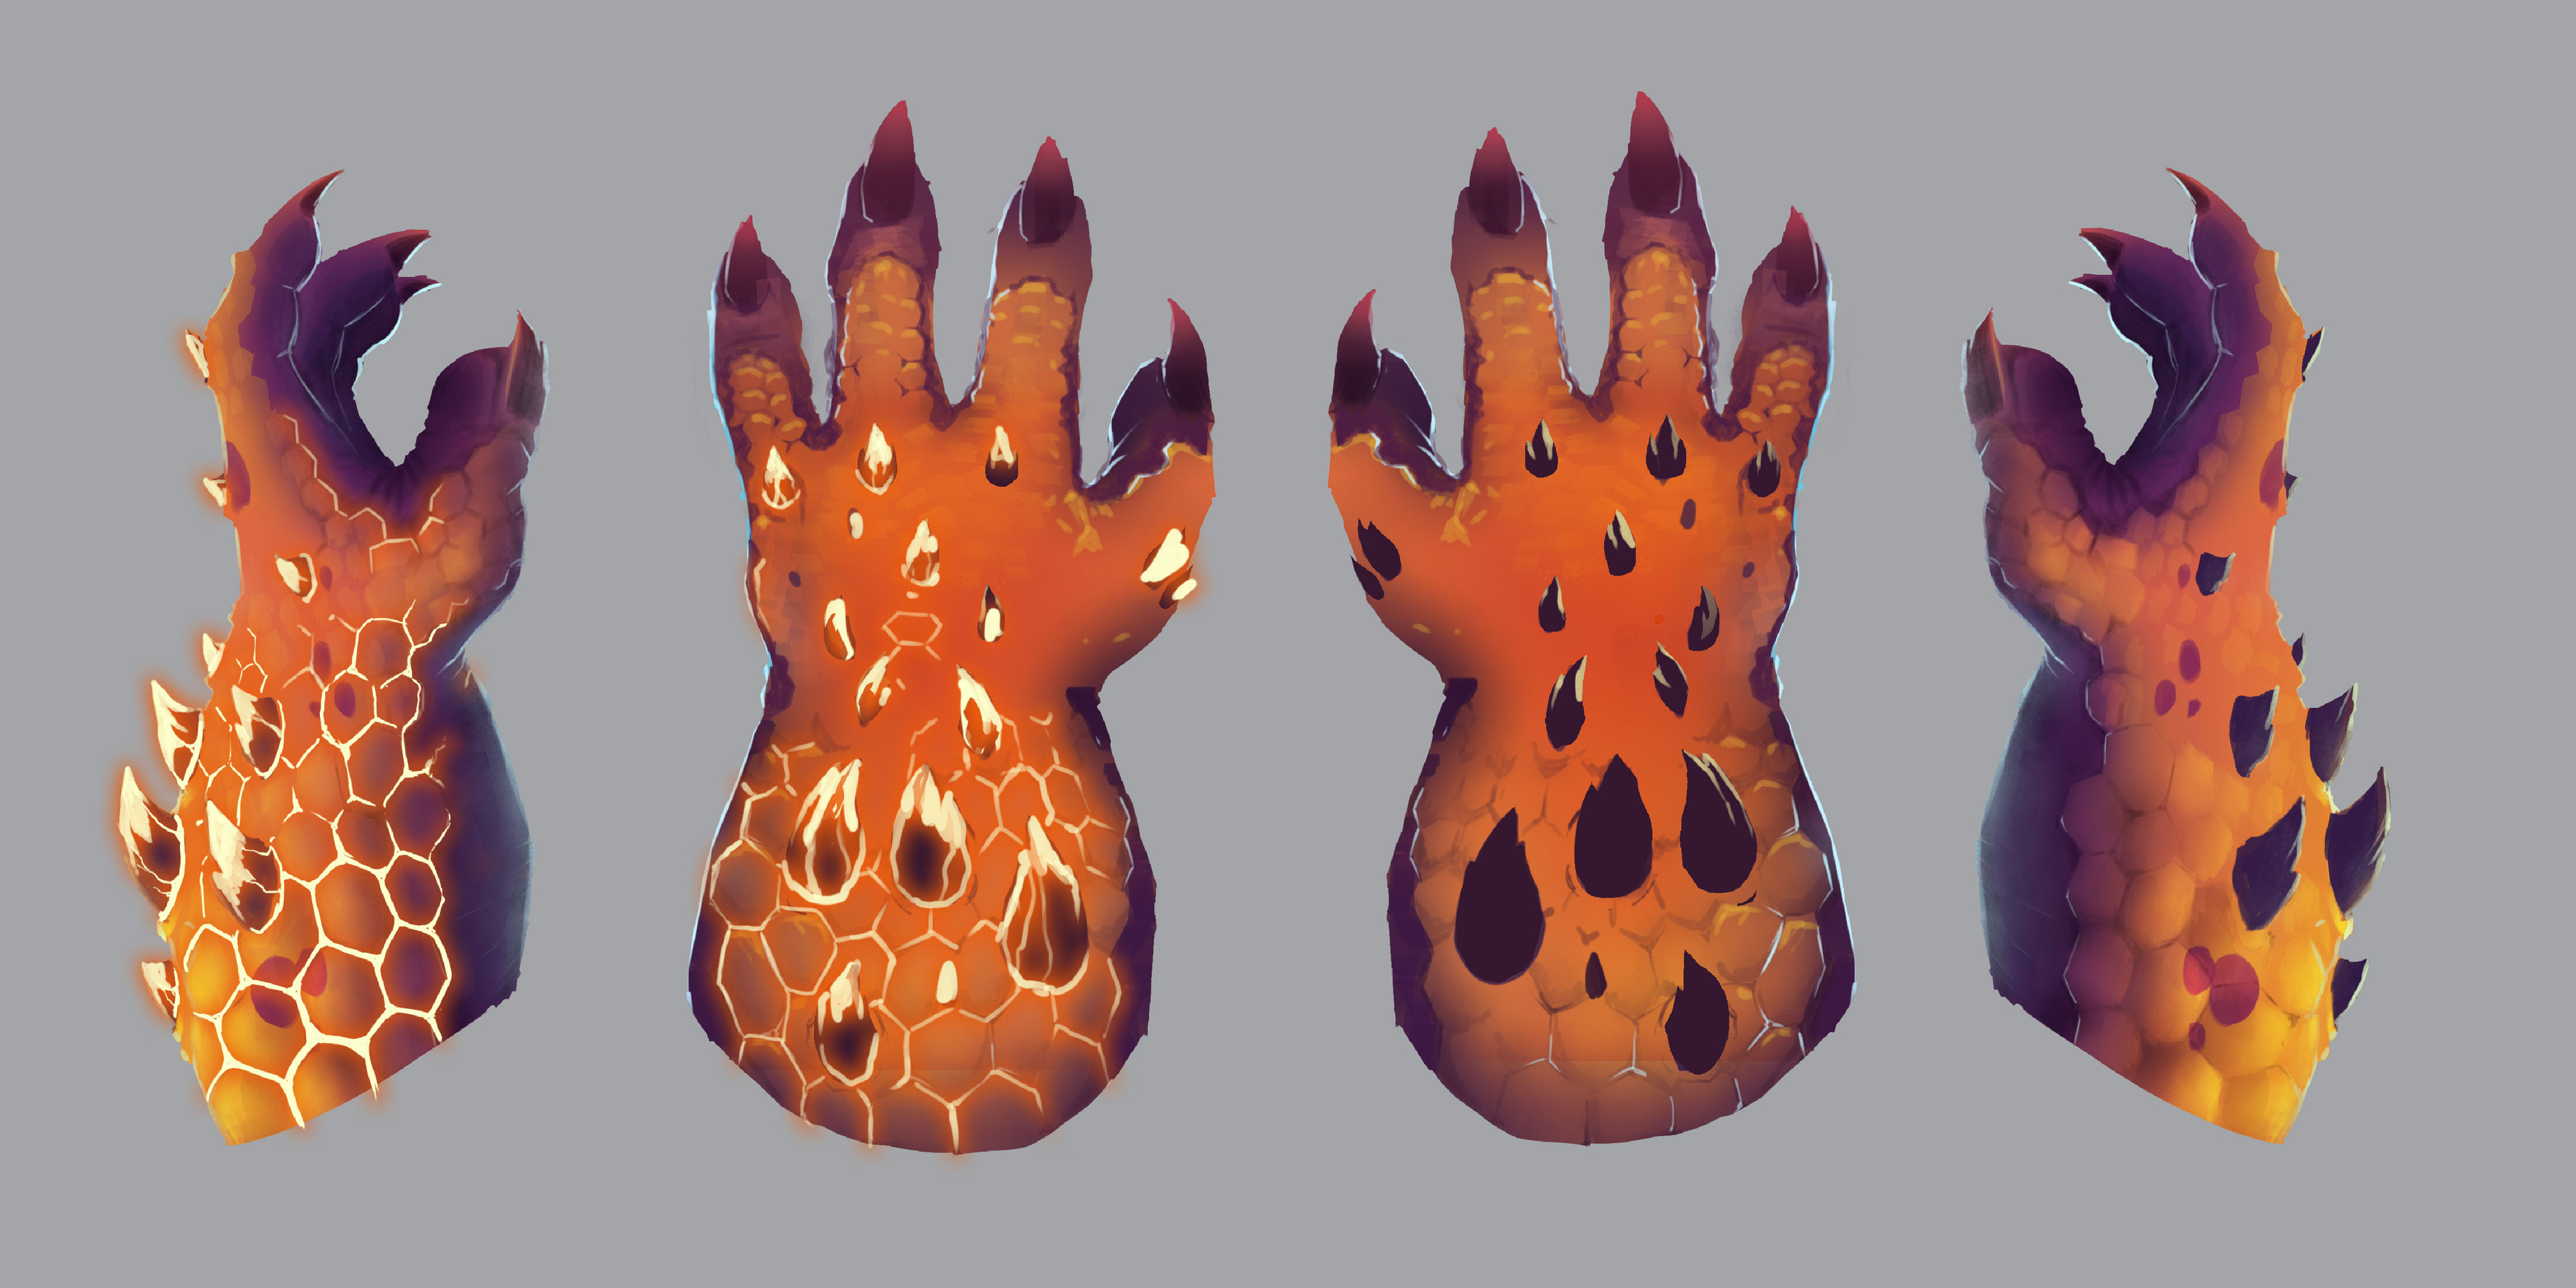 Final concept art for the player's claws.